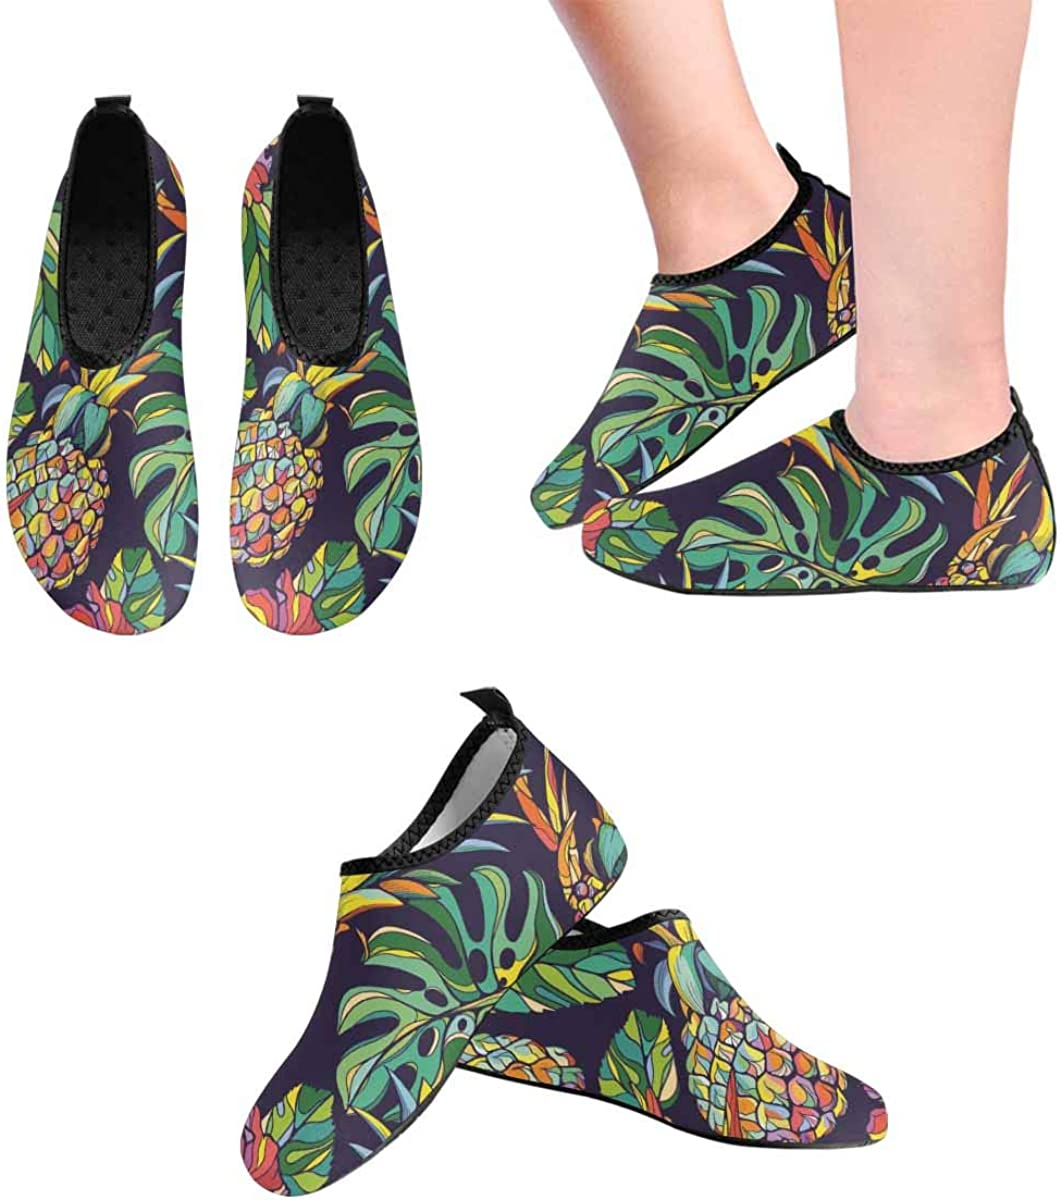 INTERESTPRINT Mens Quick Dry Barefoot Aqua Shoes Colorful Pineapples Pattern Outdoor Beach Swimming Water Socks